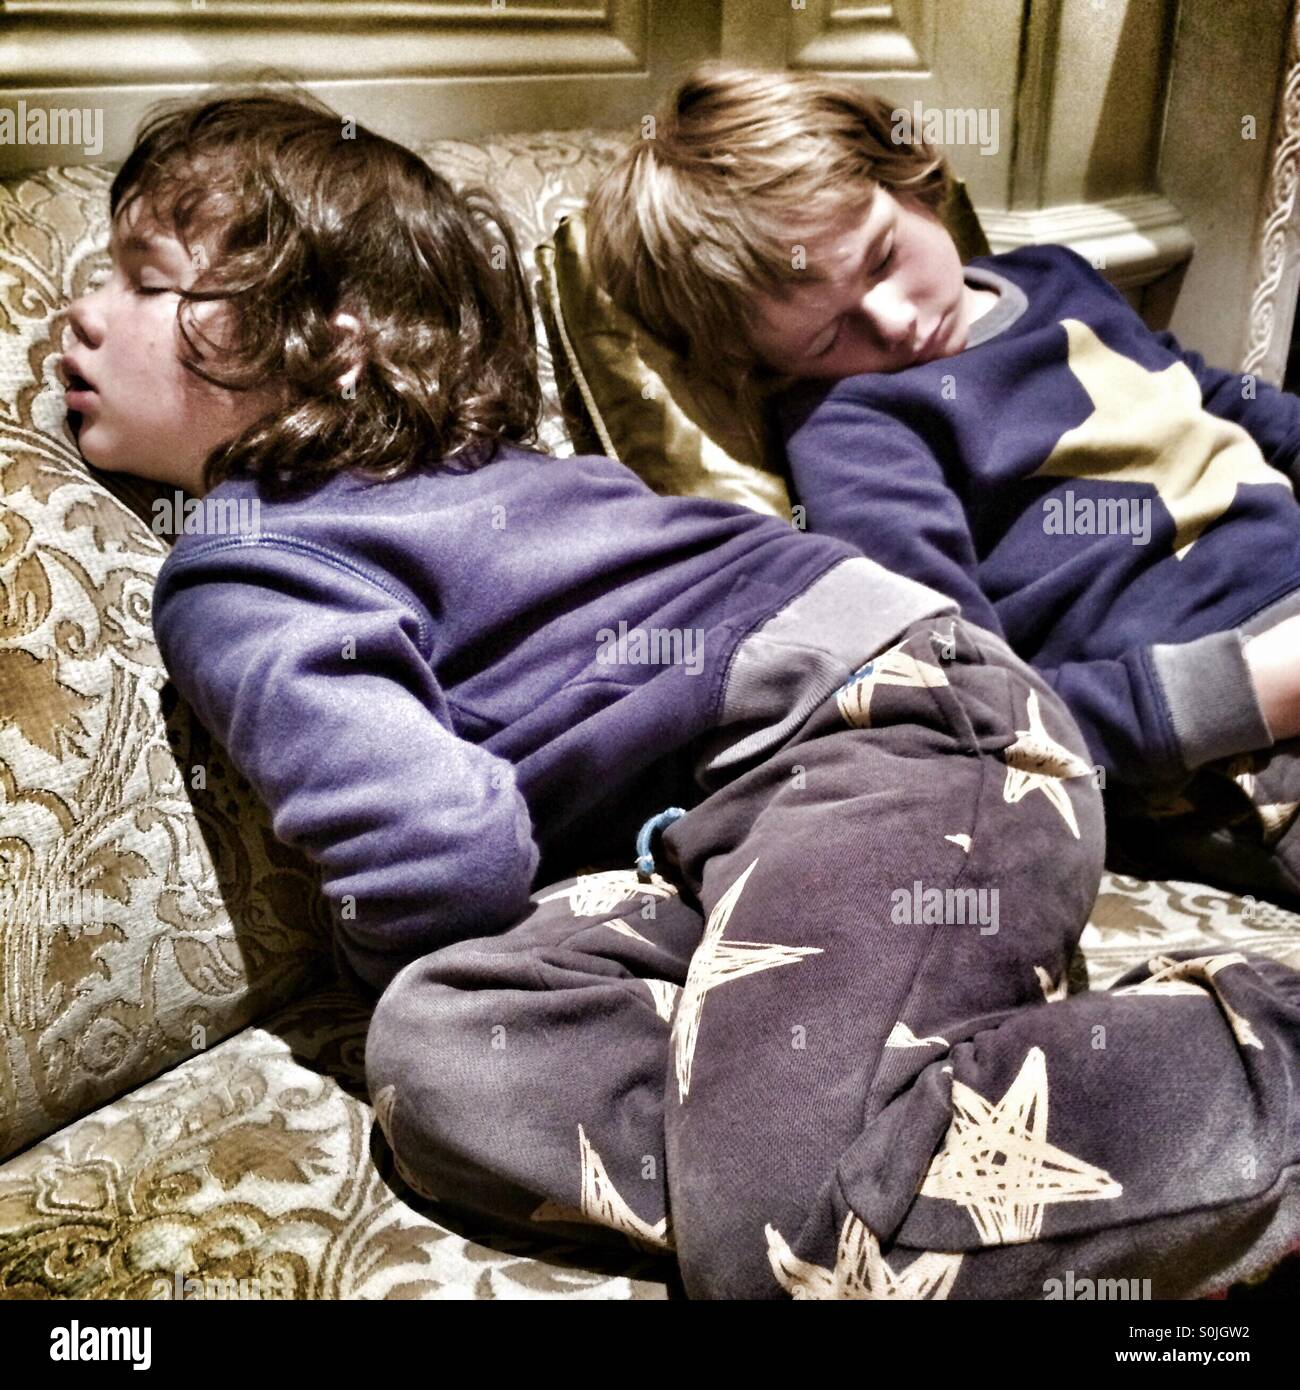 Two sleeping boys four and five years - Stock Image